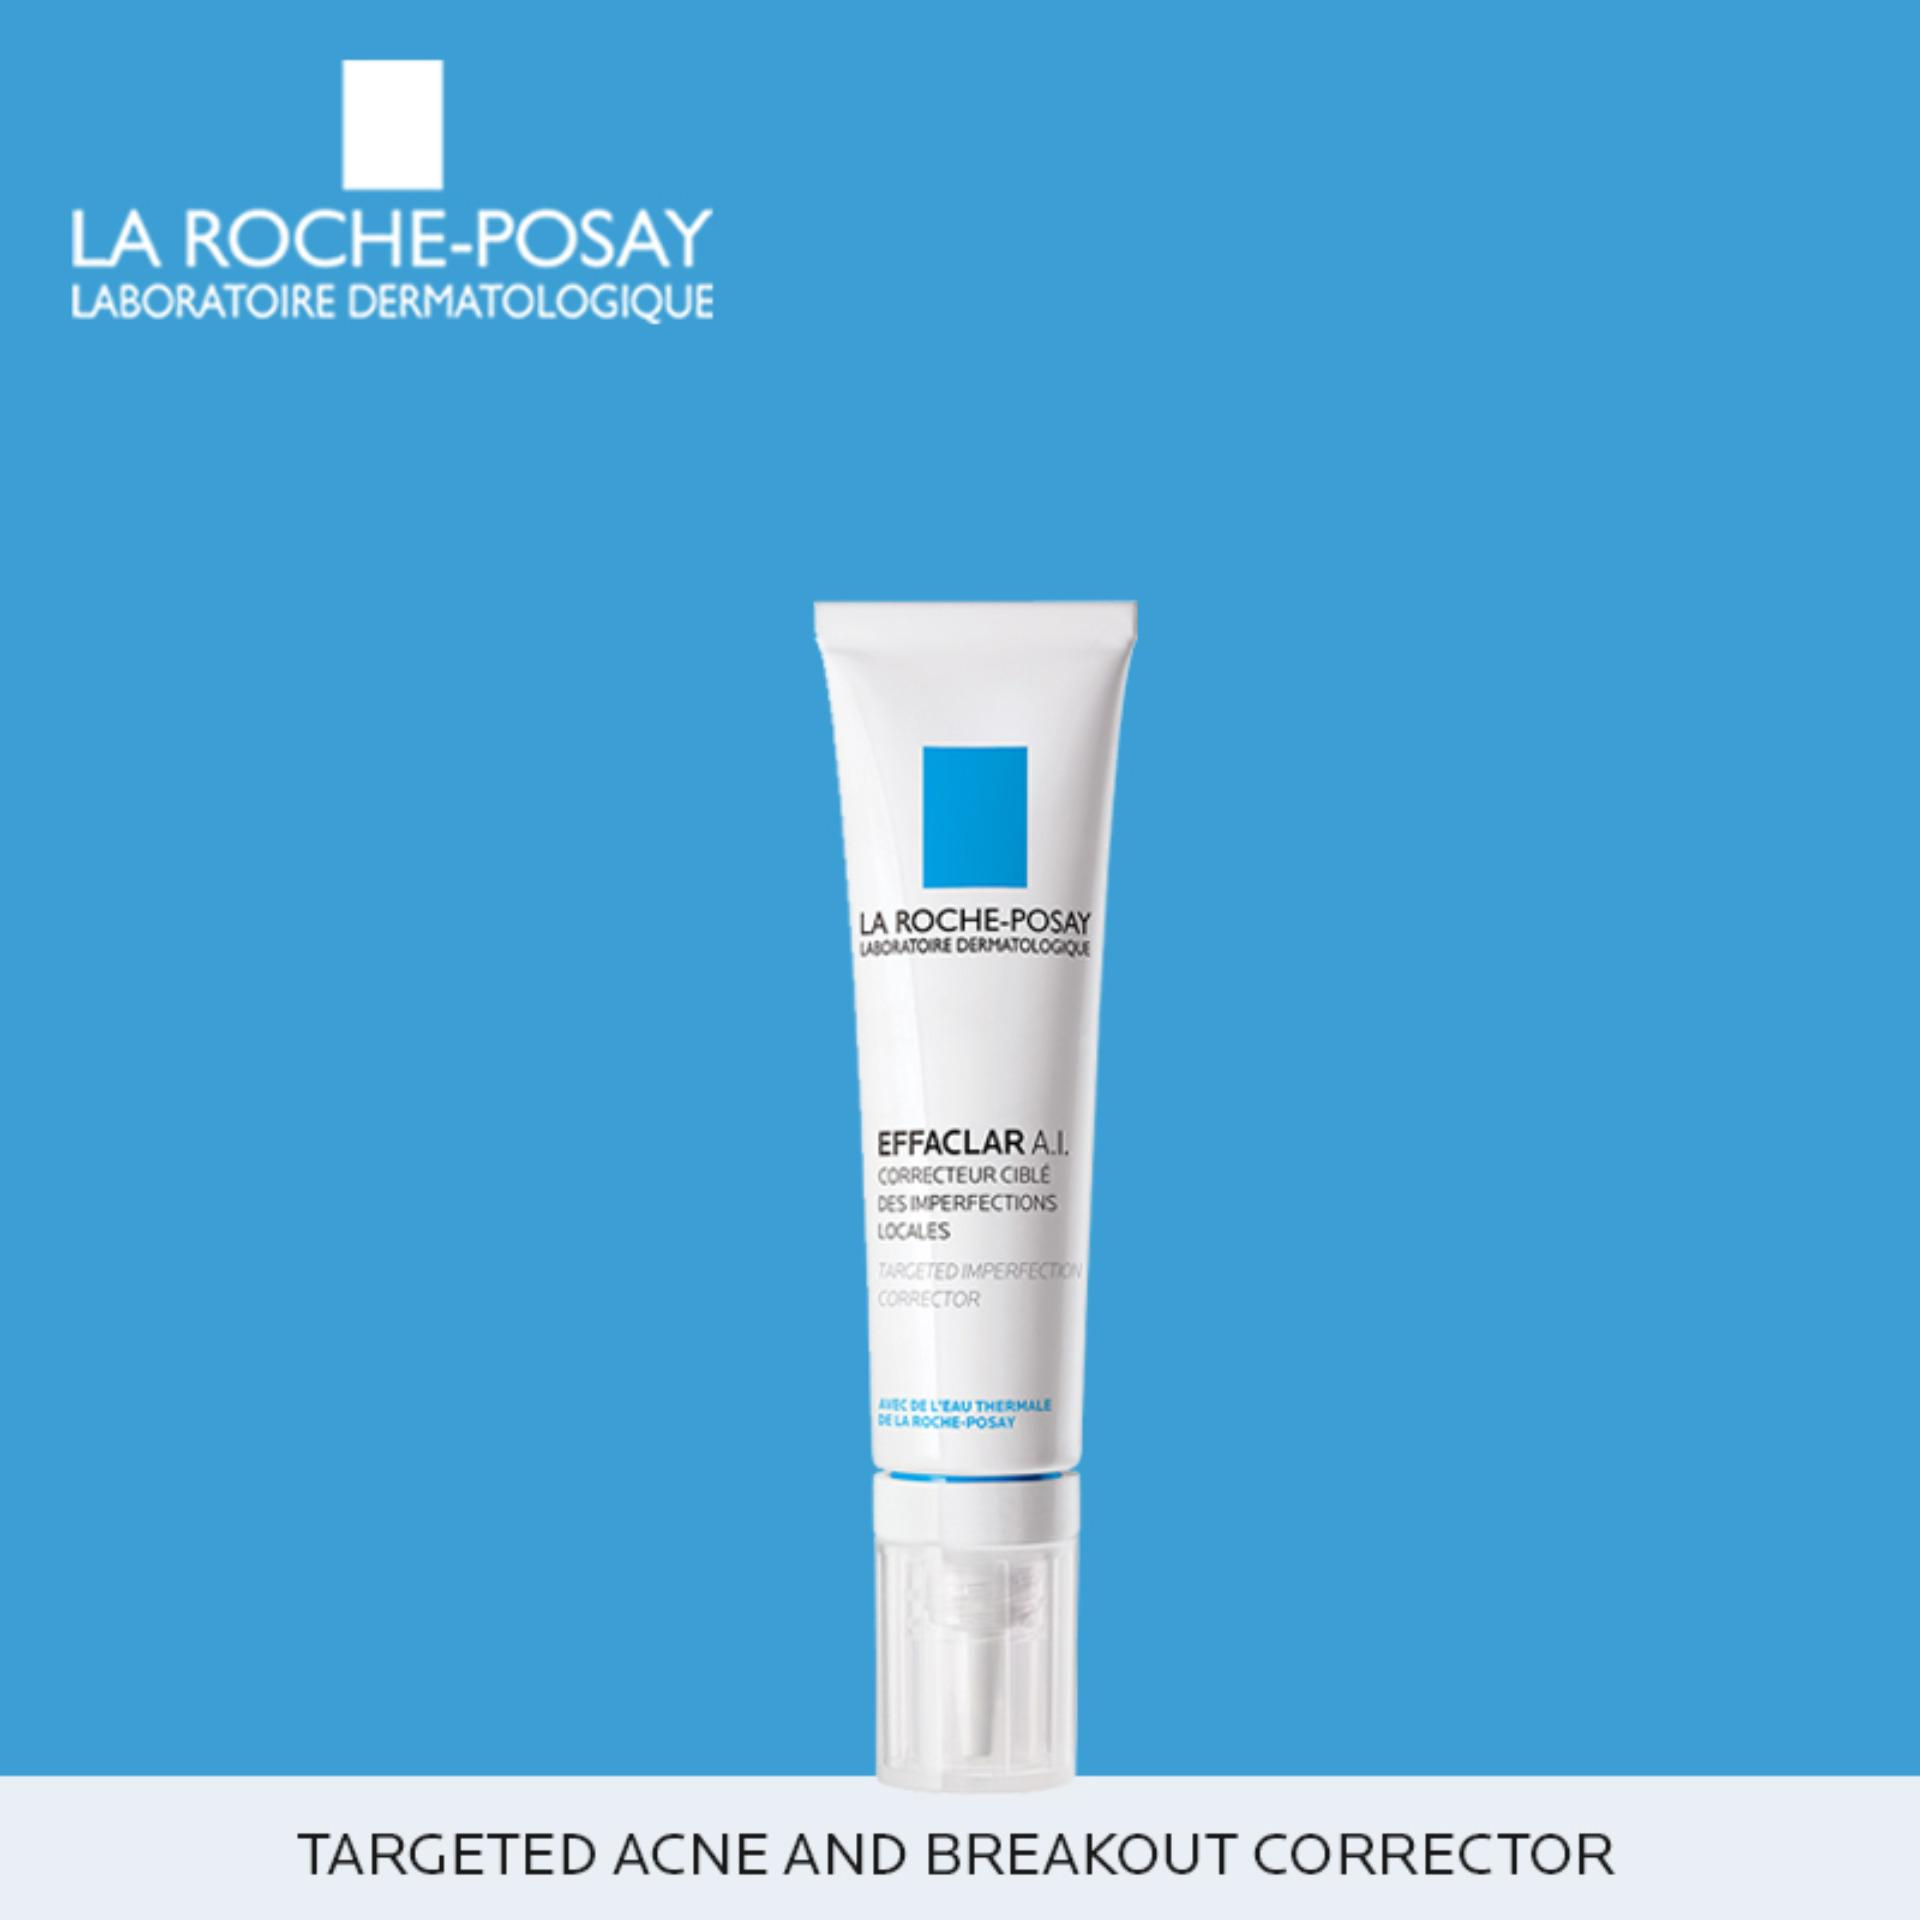 La Roche Posay Effaclar Ai Targetted Breakout Corrector Coupon Code